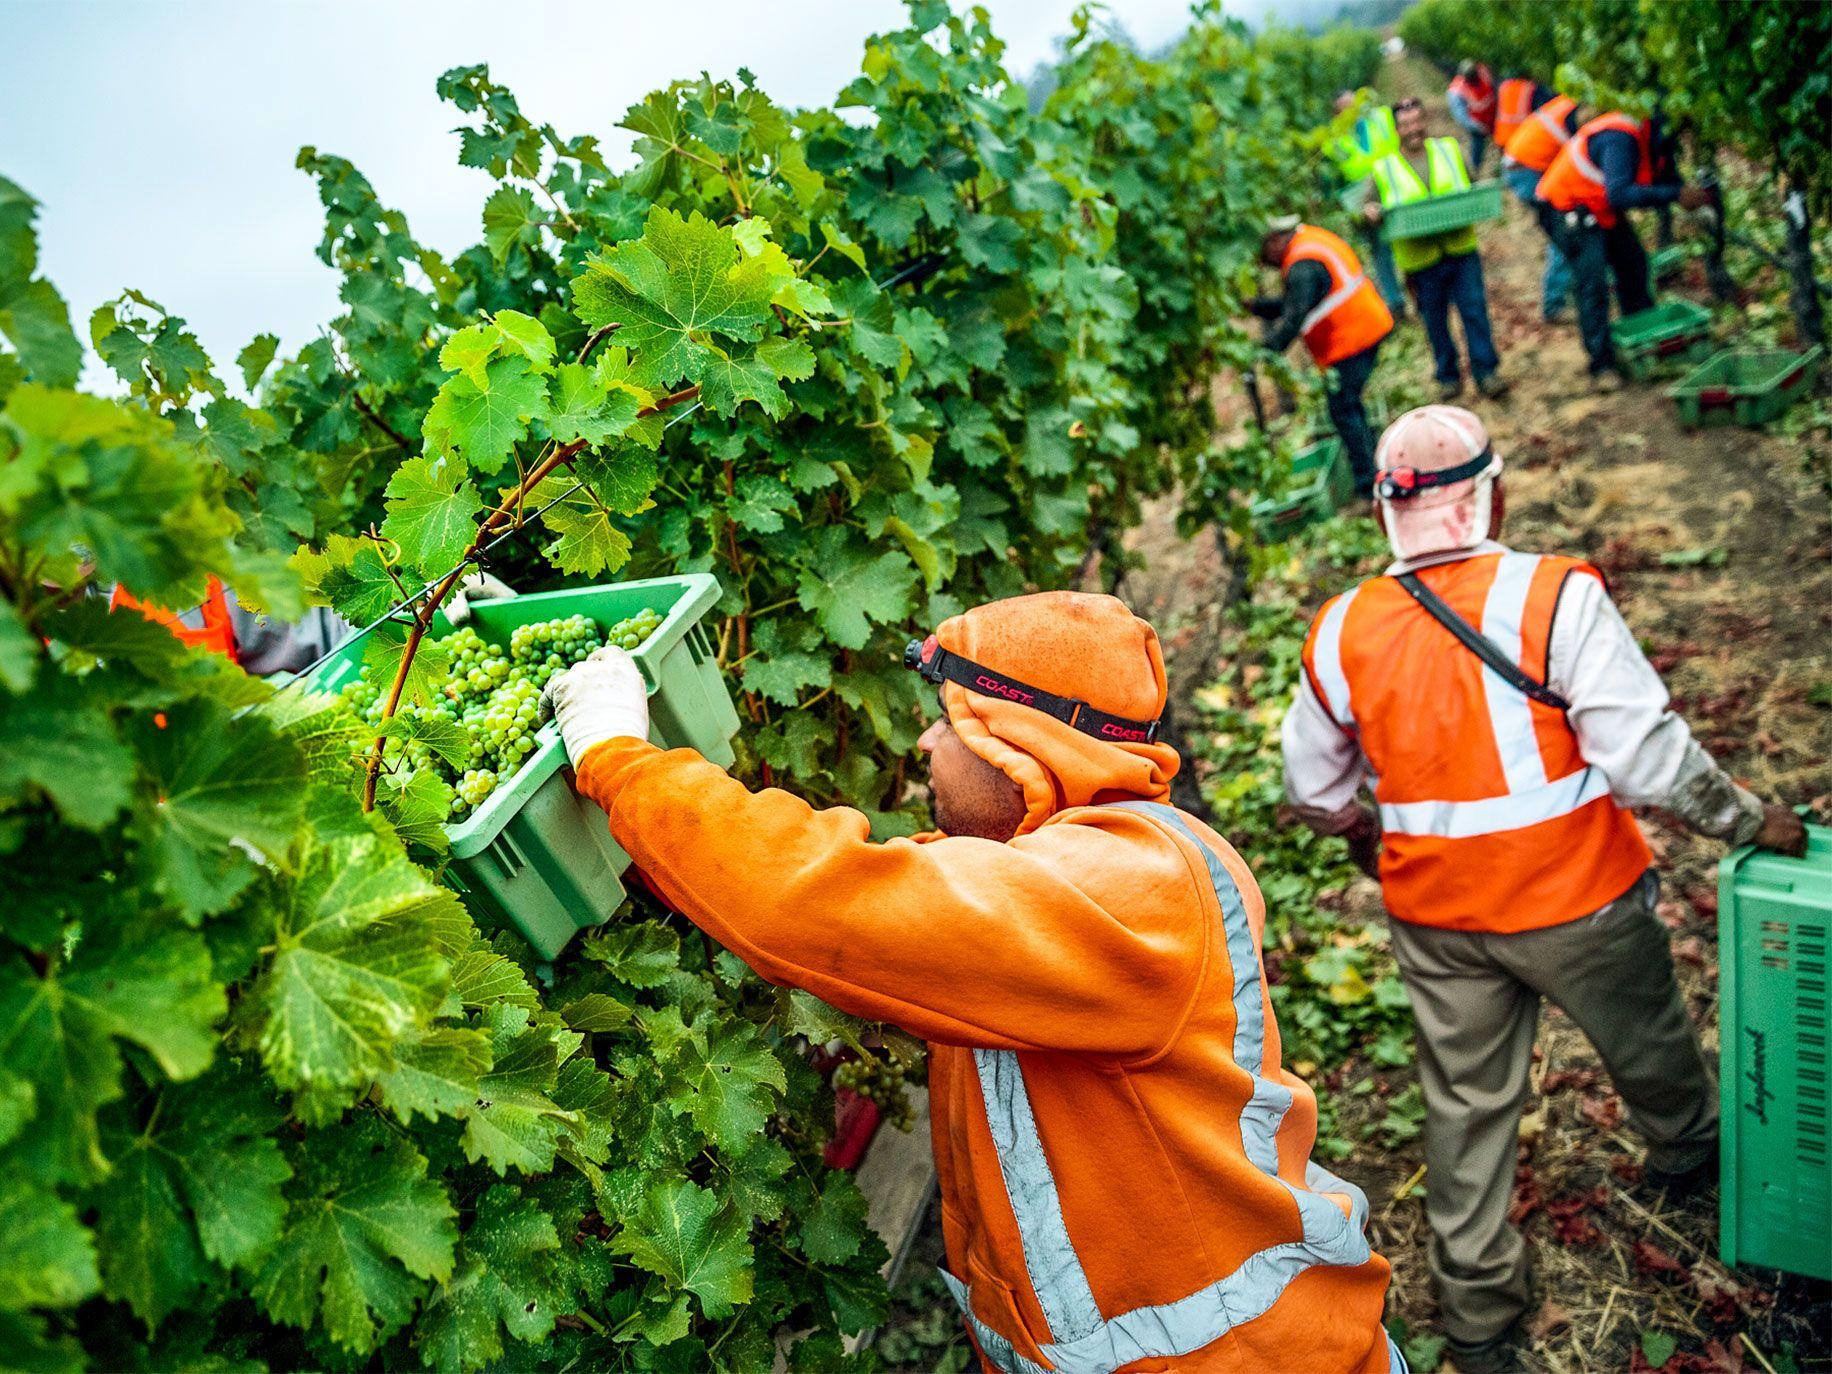 Workers at Inglenook winery in Napa Valley harvest sauvignon blanc grapes. Francis Ford Coppola and his wife, Eleanor, purchased the winery in 1975 with a goal of returning it to greatness.